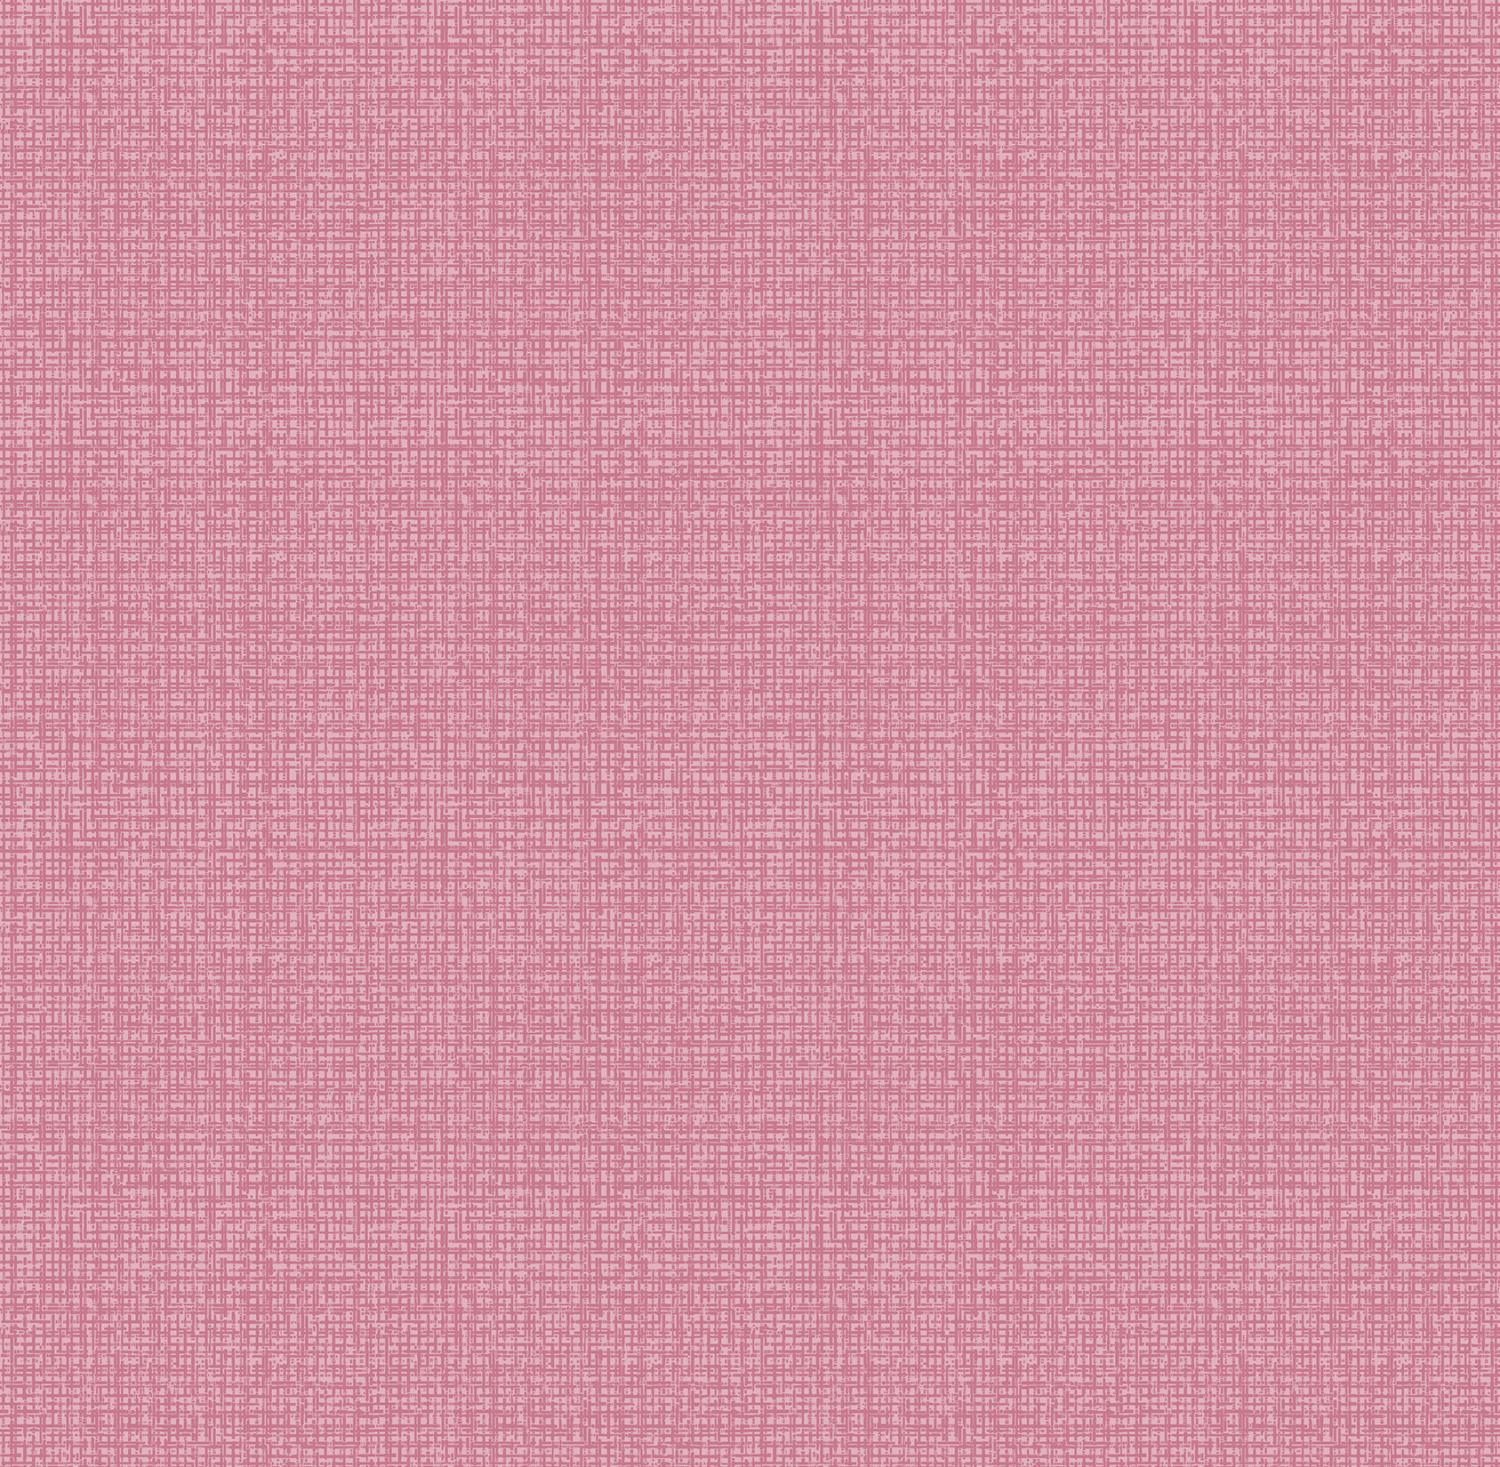 Color Weave #20 Medium Pink